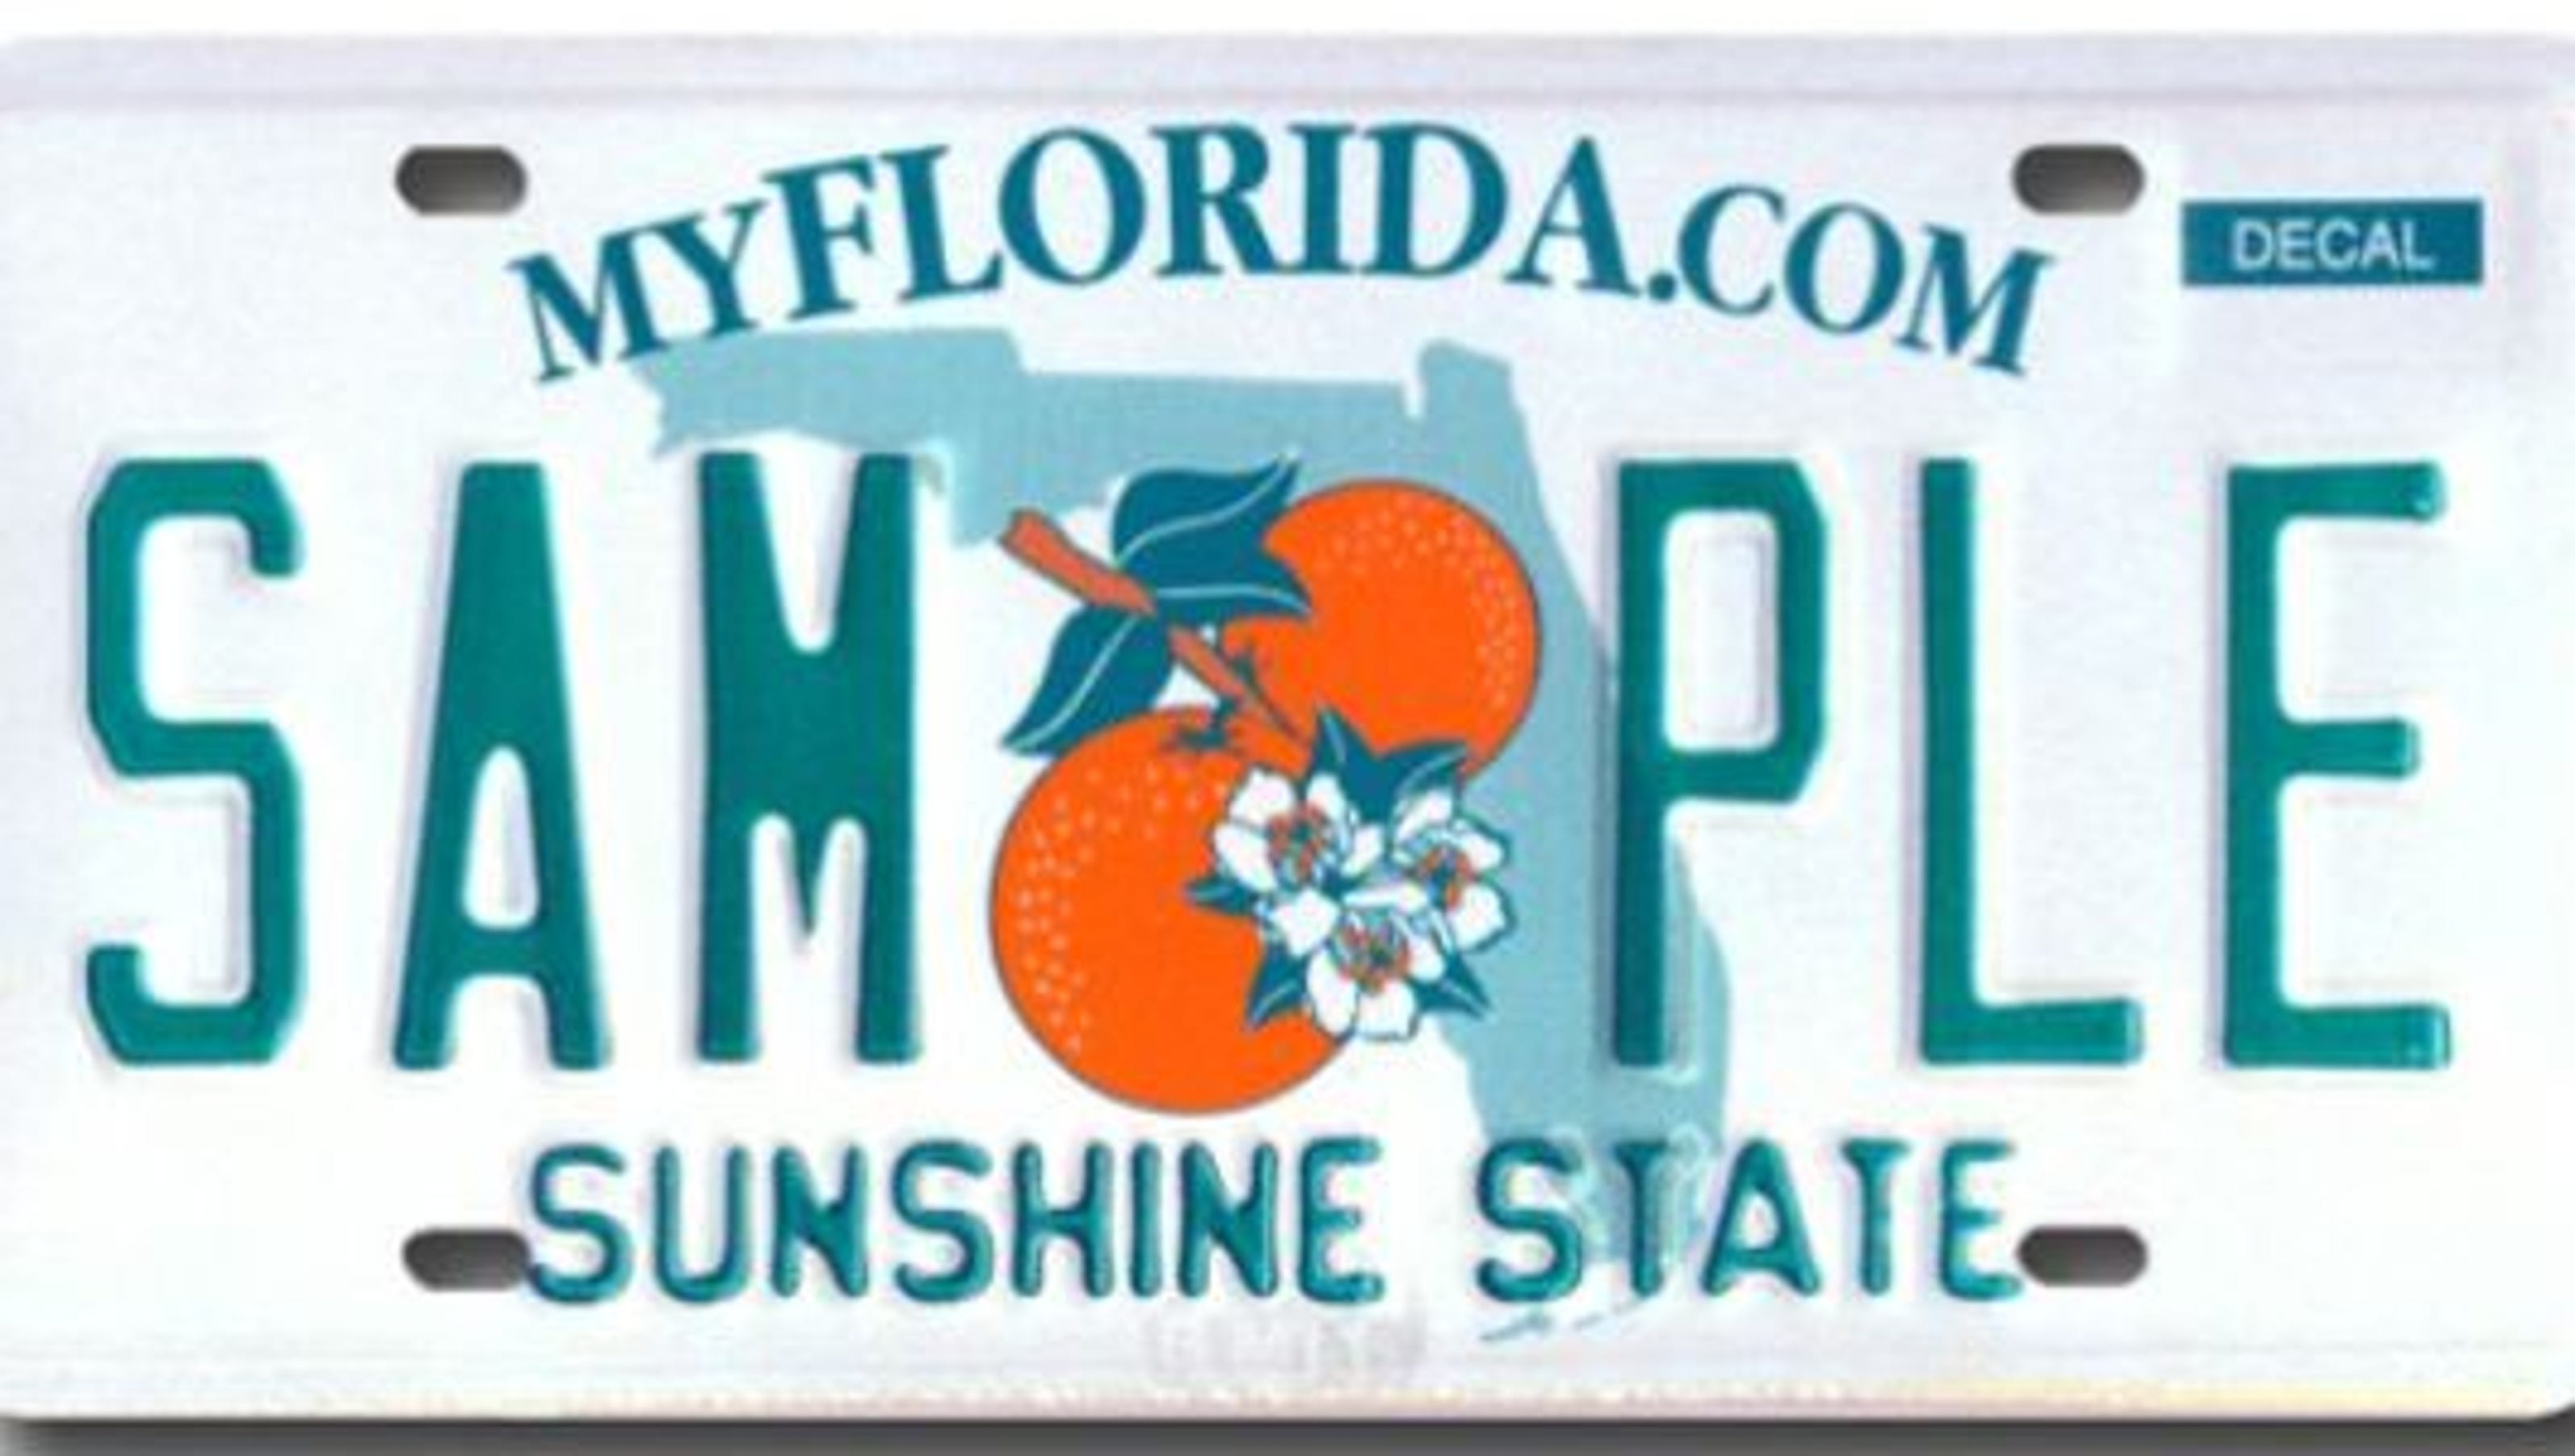 Thieves Targeting License Plate Decals